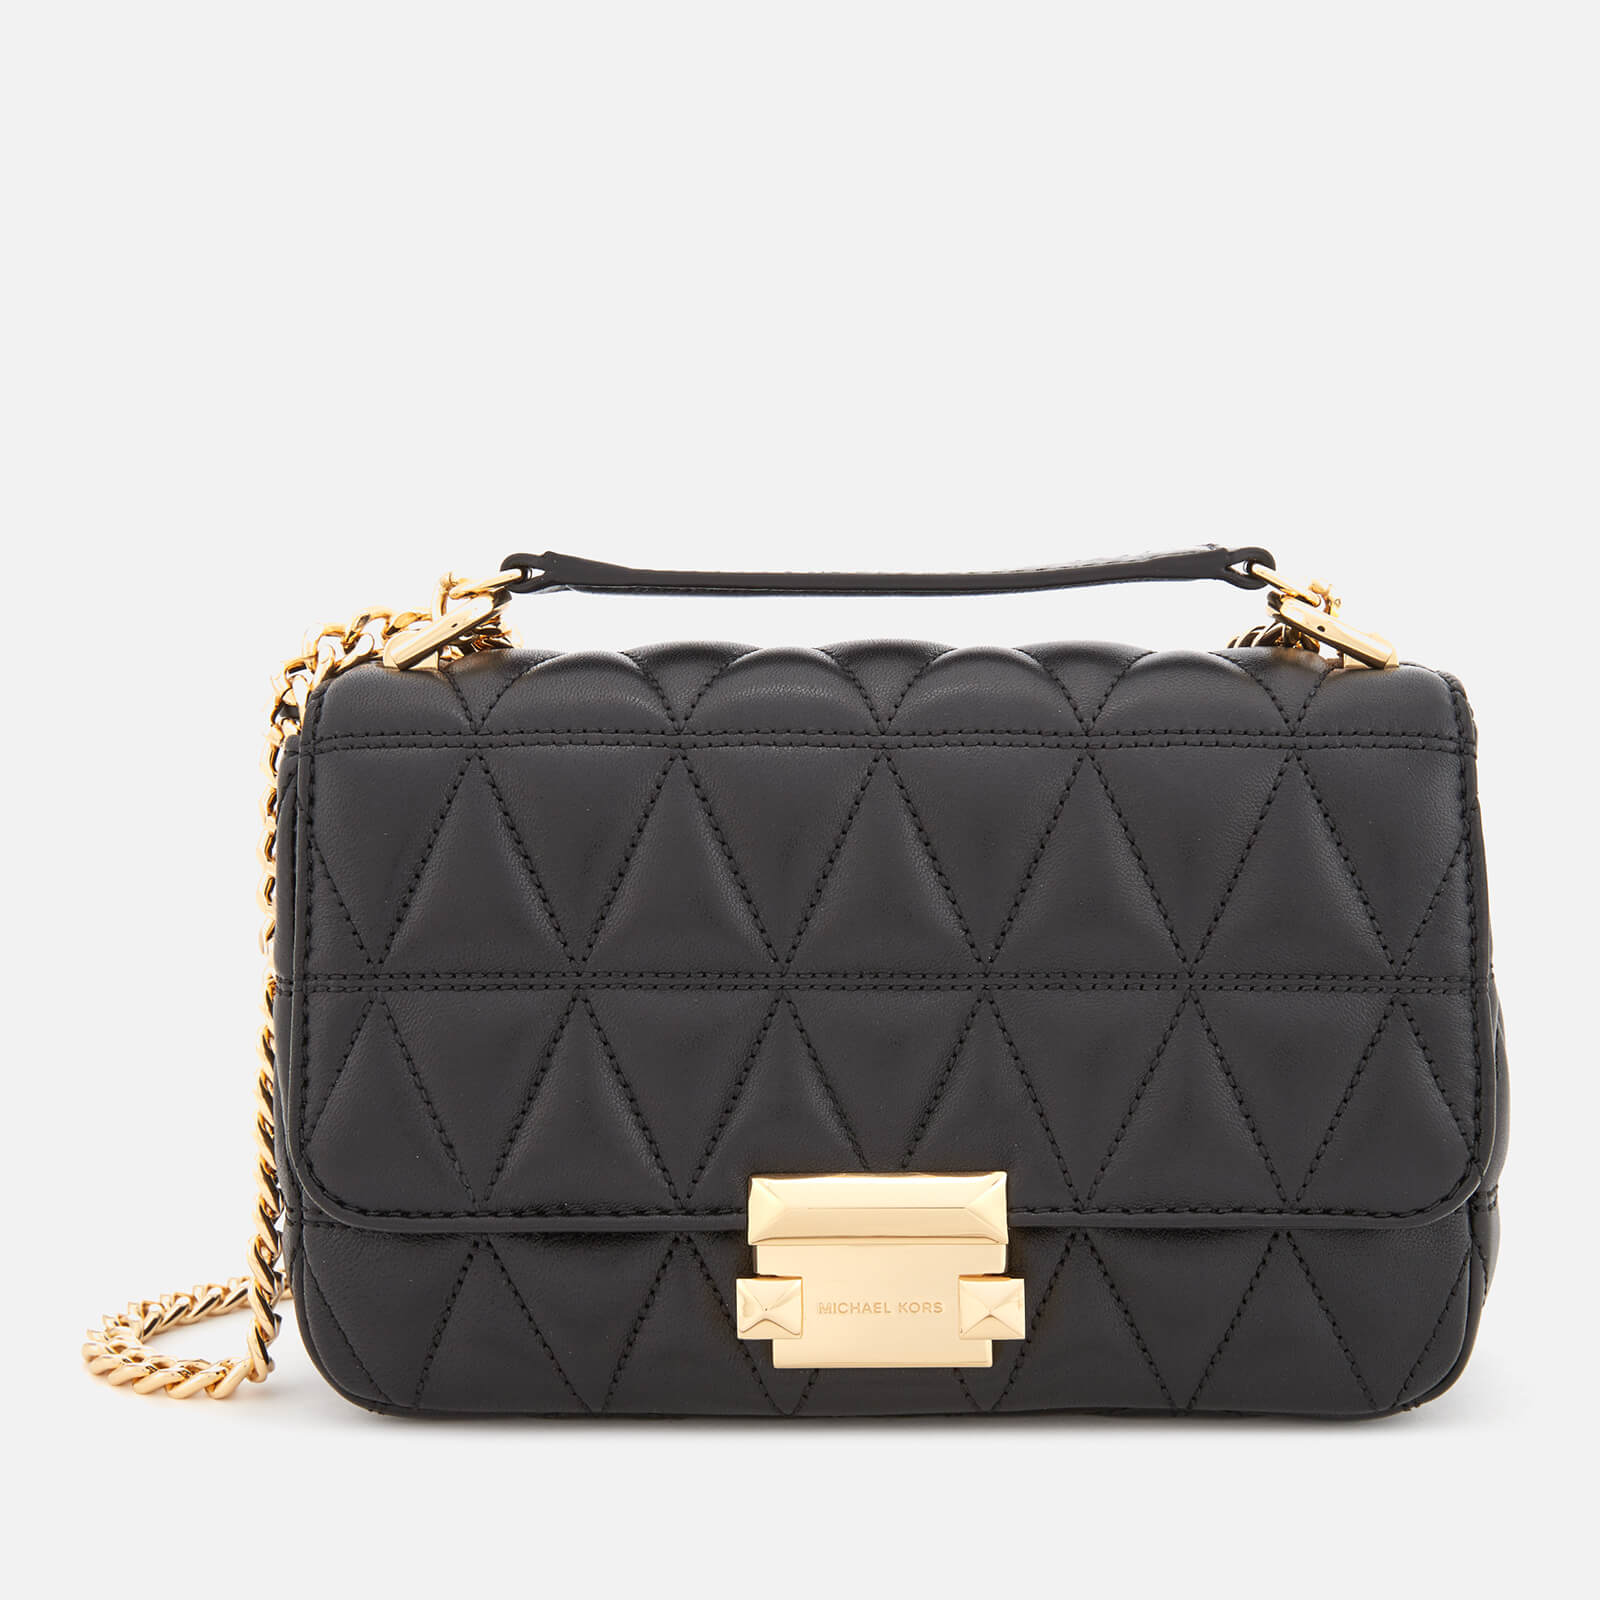 693adb0d03 MICHAEL MICHAEL KORS Women s Pyramid Quilted Chain Shoulder Bag - Black -  Free UK Delivery over £50